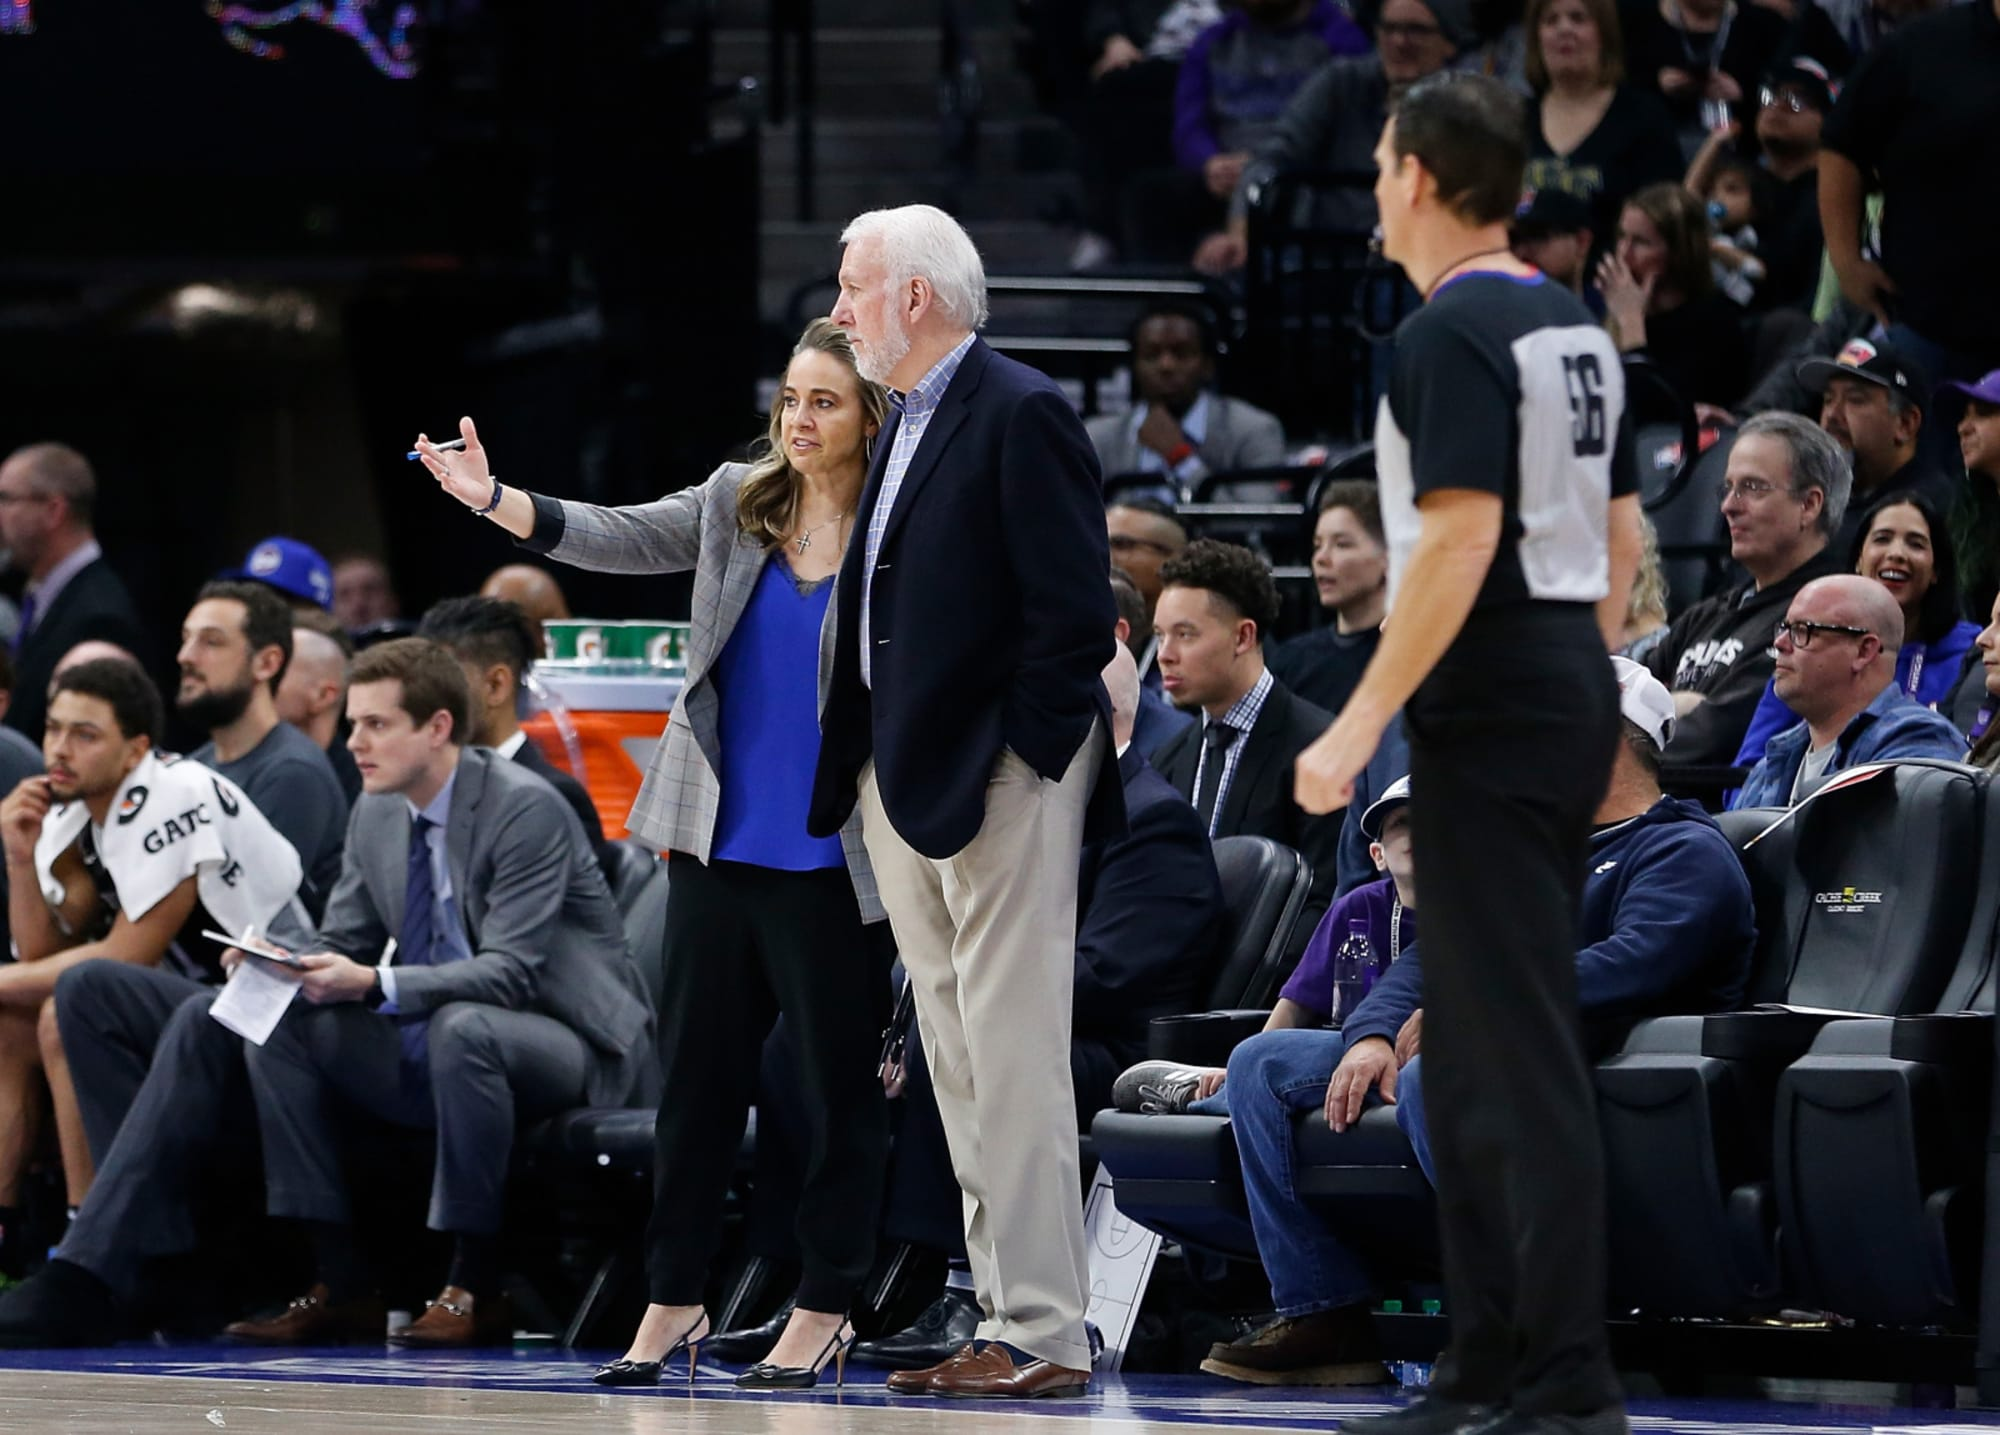 OKC Thunder: Becky Hammon is a great fit to fill head coach vacancy